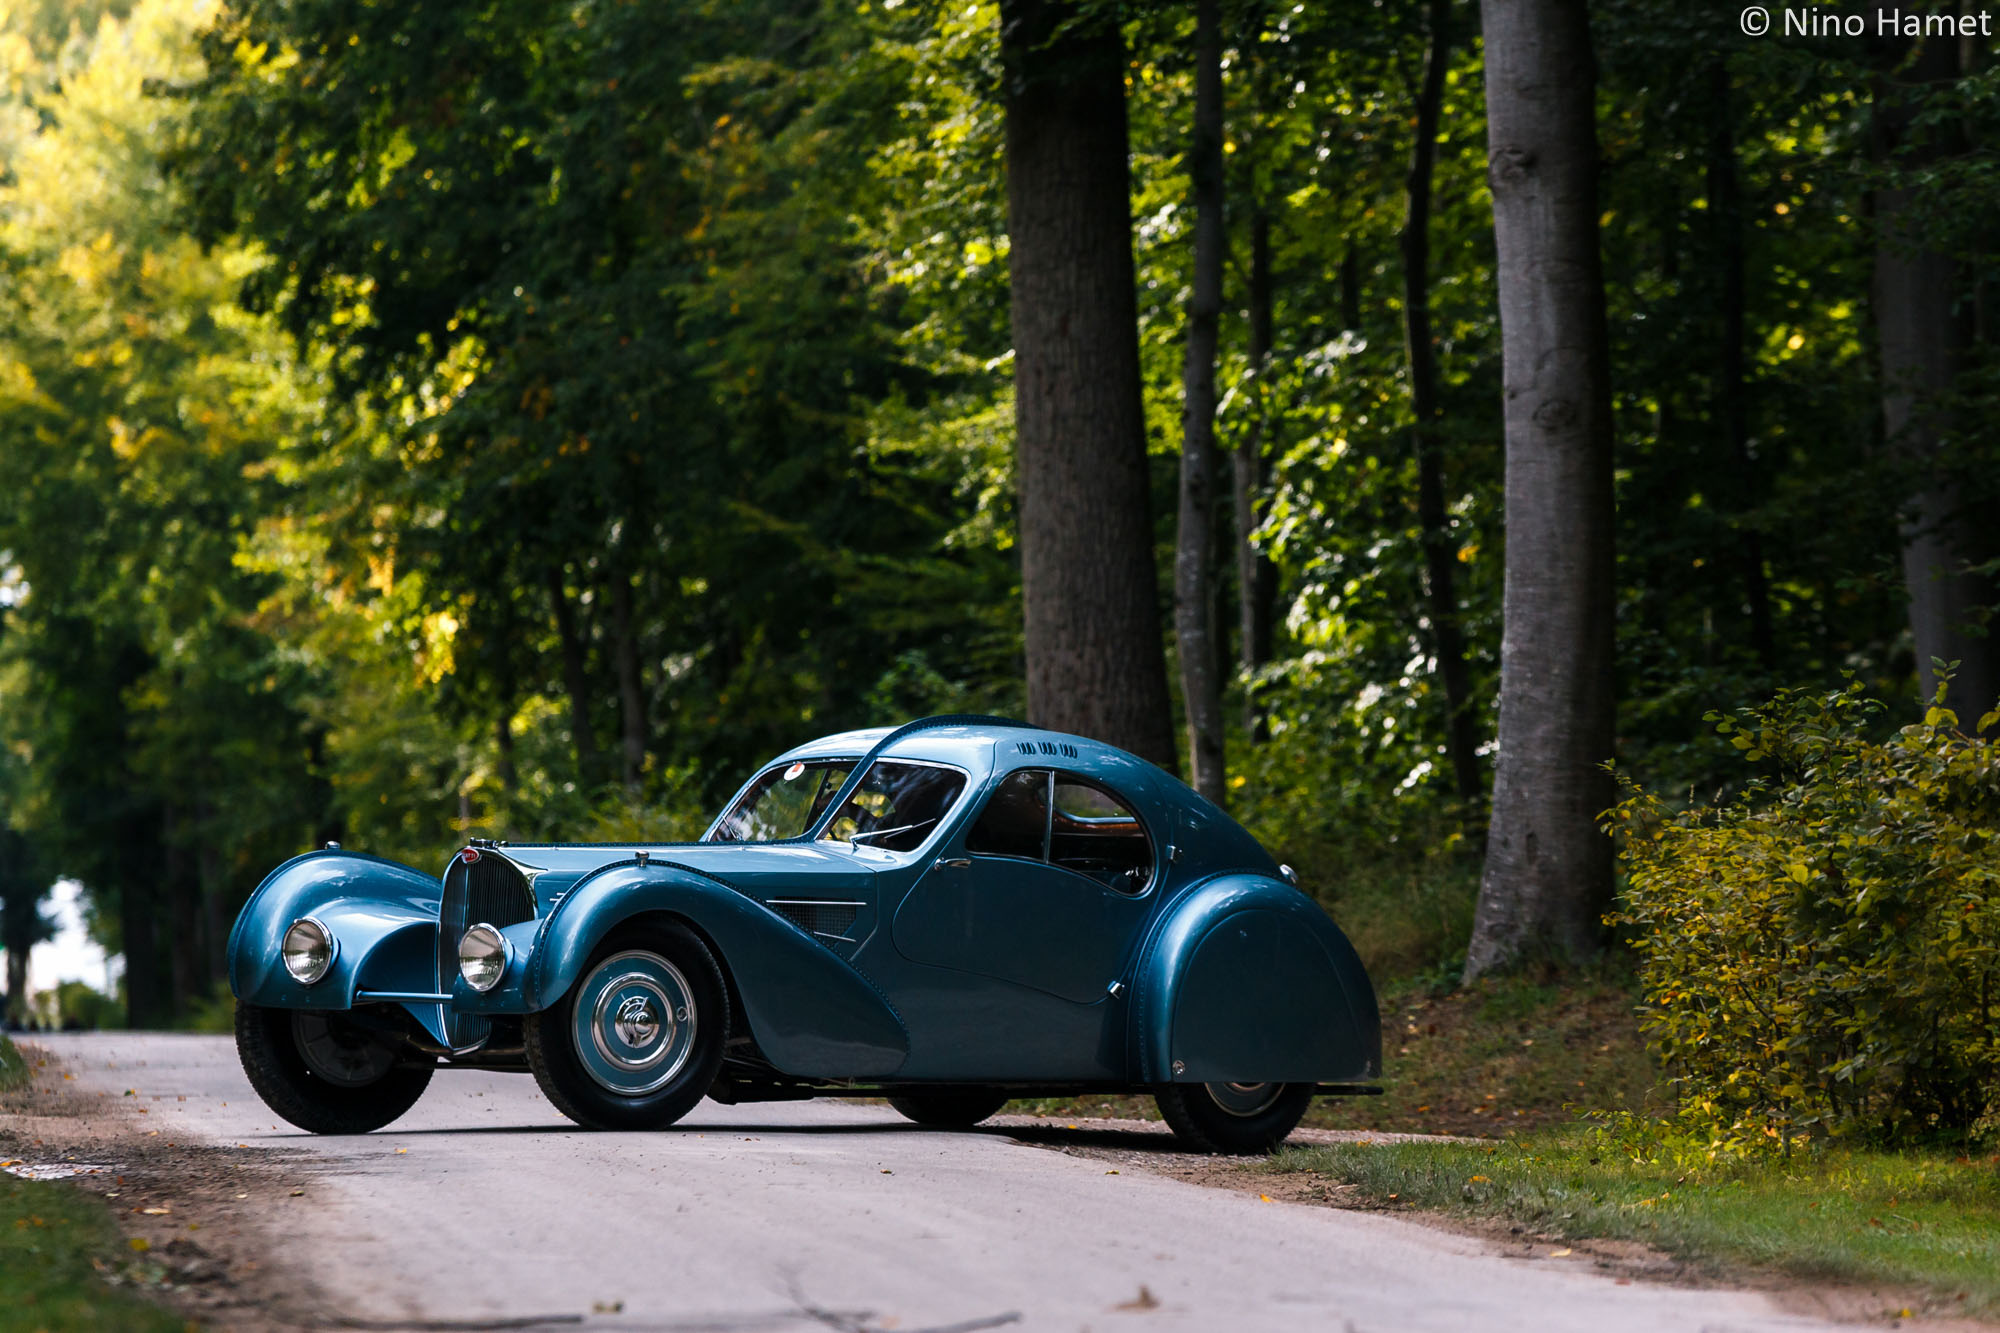 Bugatti Type 57 SC Atlantic #57374 – 1936